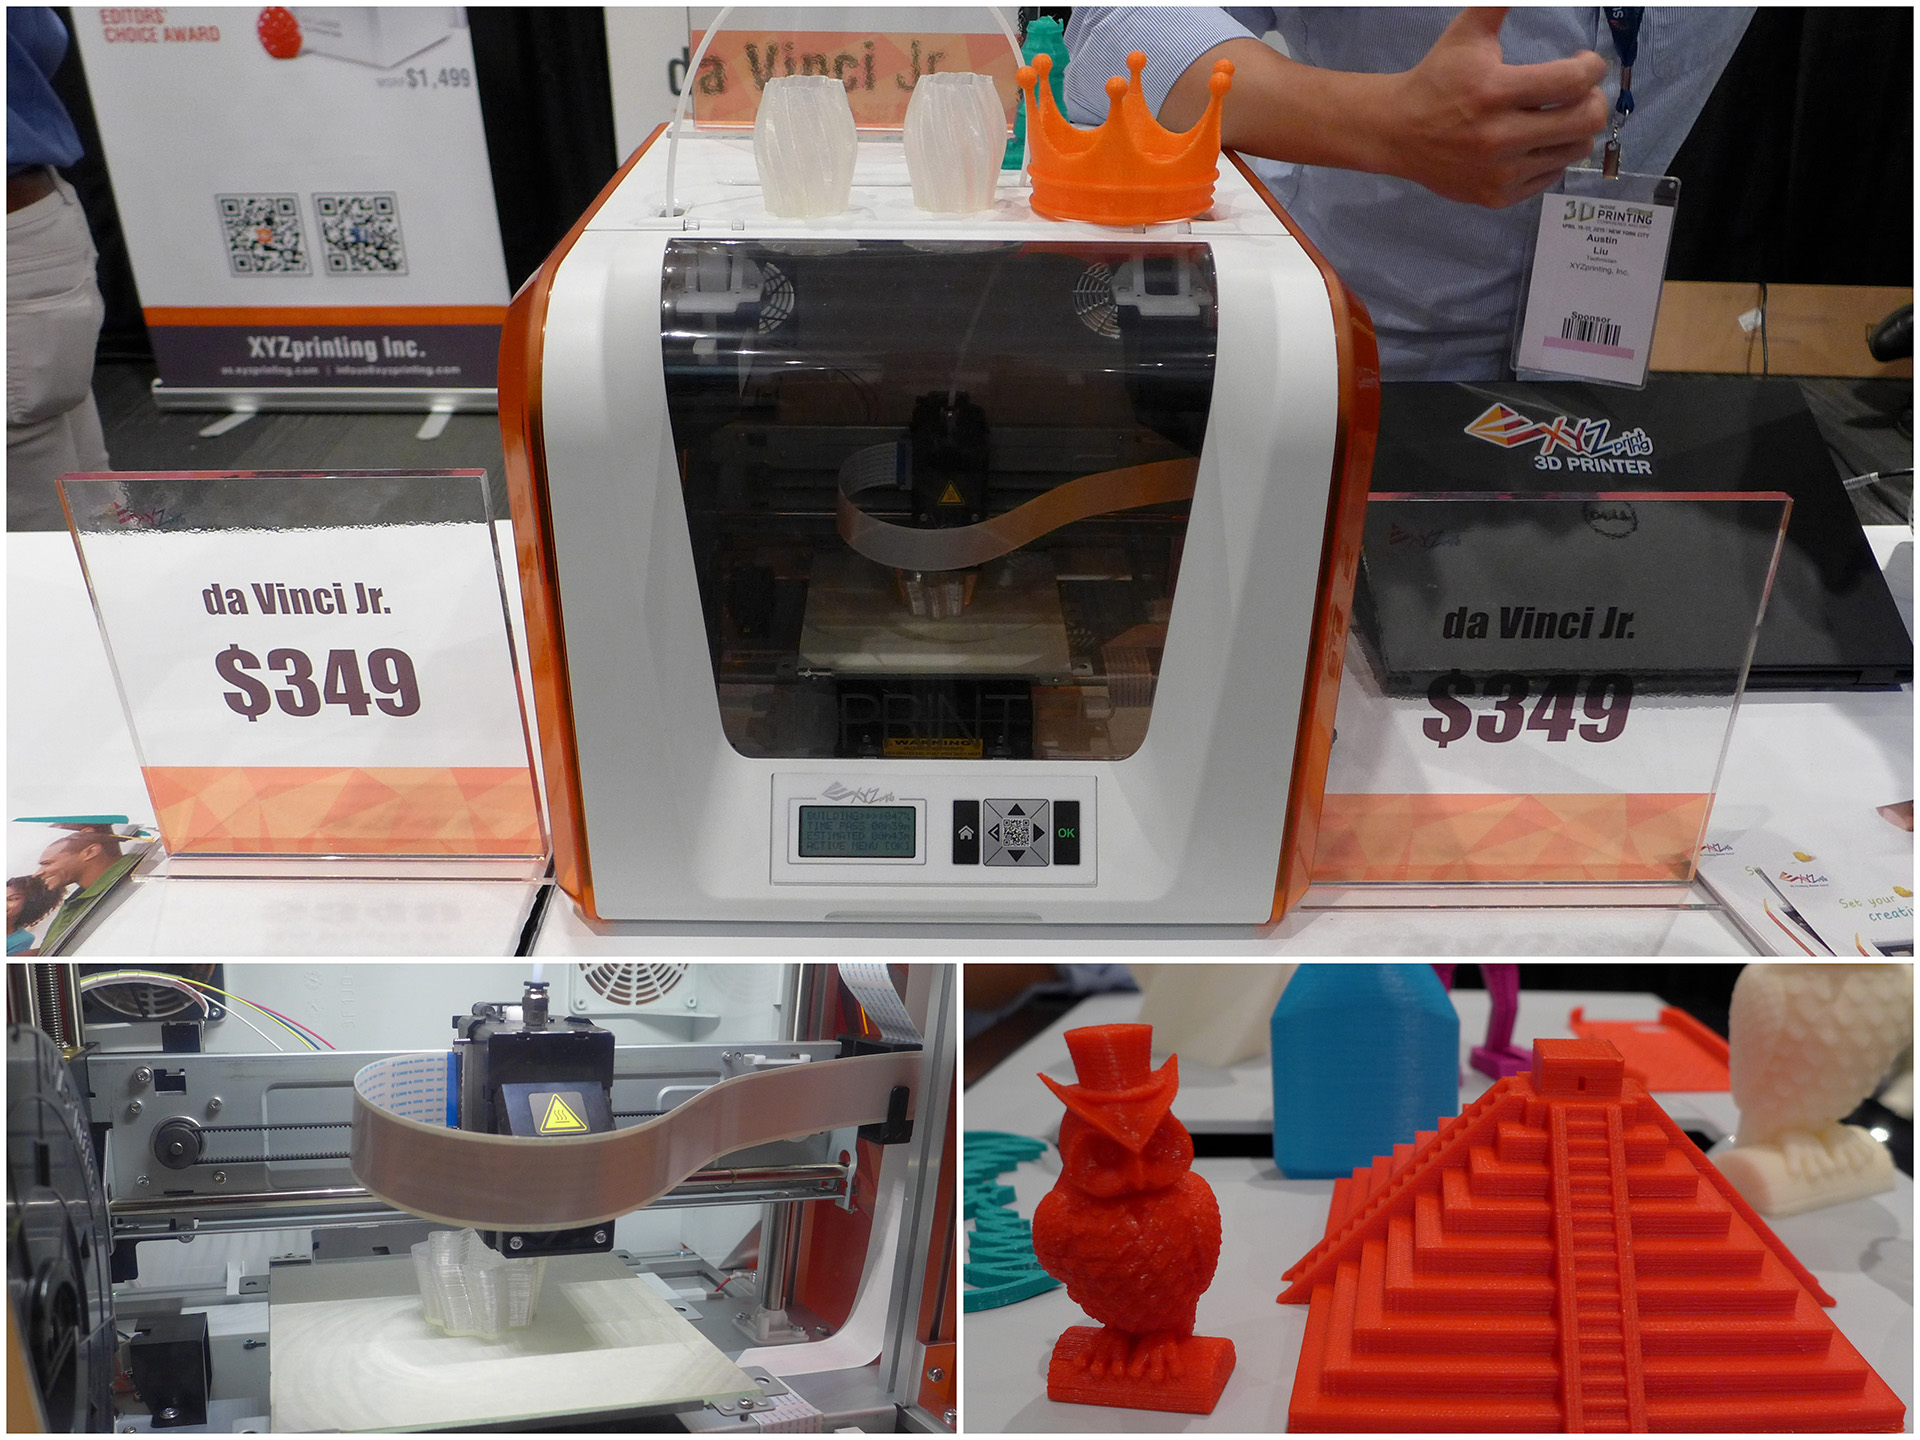 Bits to Atoms: NYC 3D Printing Expo - Tested